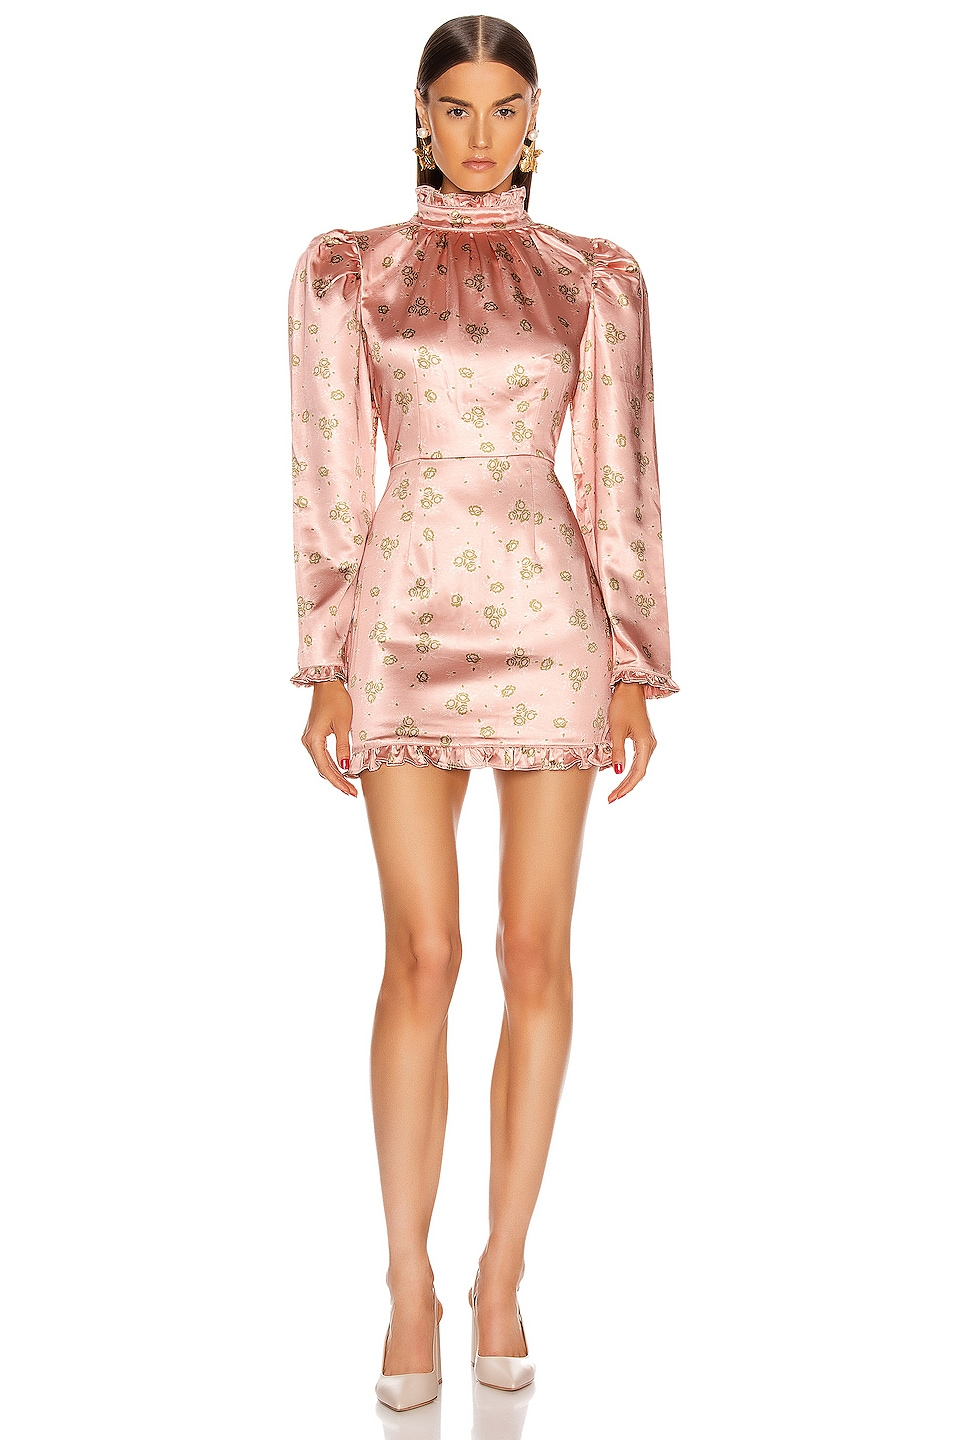 Image 1 of Atoir What's On Your Mind Dress in Peach Botanical